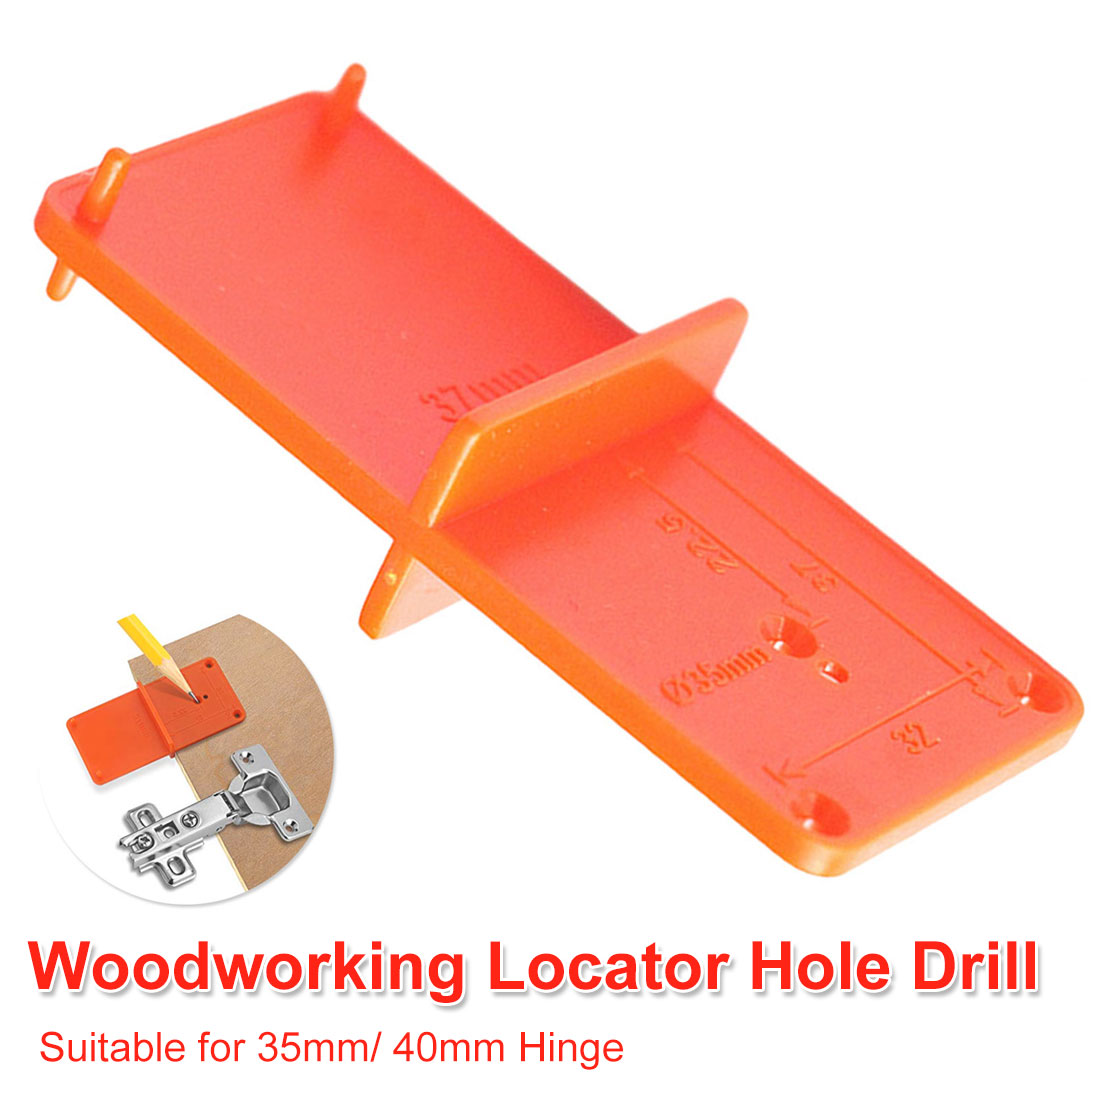 Hole Drilling Guide Locator Suit 35mm/ 40mm Hinge Hole Opener Template Door Cabinets DIY Tool For Woodworking Tool